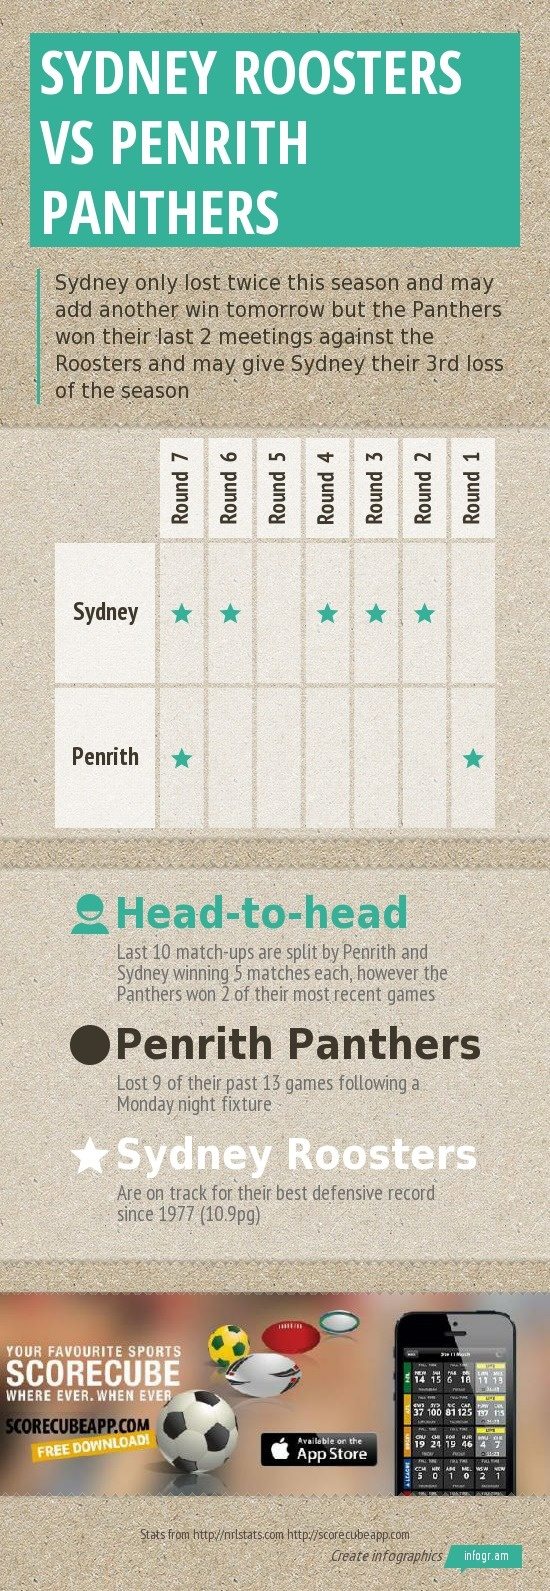 NRL - National Rugby Leaguepreview of the Sydney RoostersvsPenrith Panthersgame tomorrow May 5.Download the ScoreCube app to be updated on NRL score, schedules and stats.http://scorecubeapp.com/Download the app here: itunes download linkFollow us on Twitter: @scorecubeapp  We are also on Facebook: https://www.facebook.com/scorecube